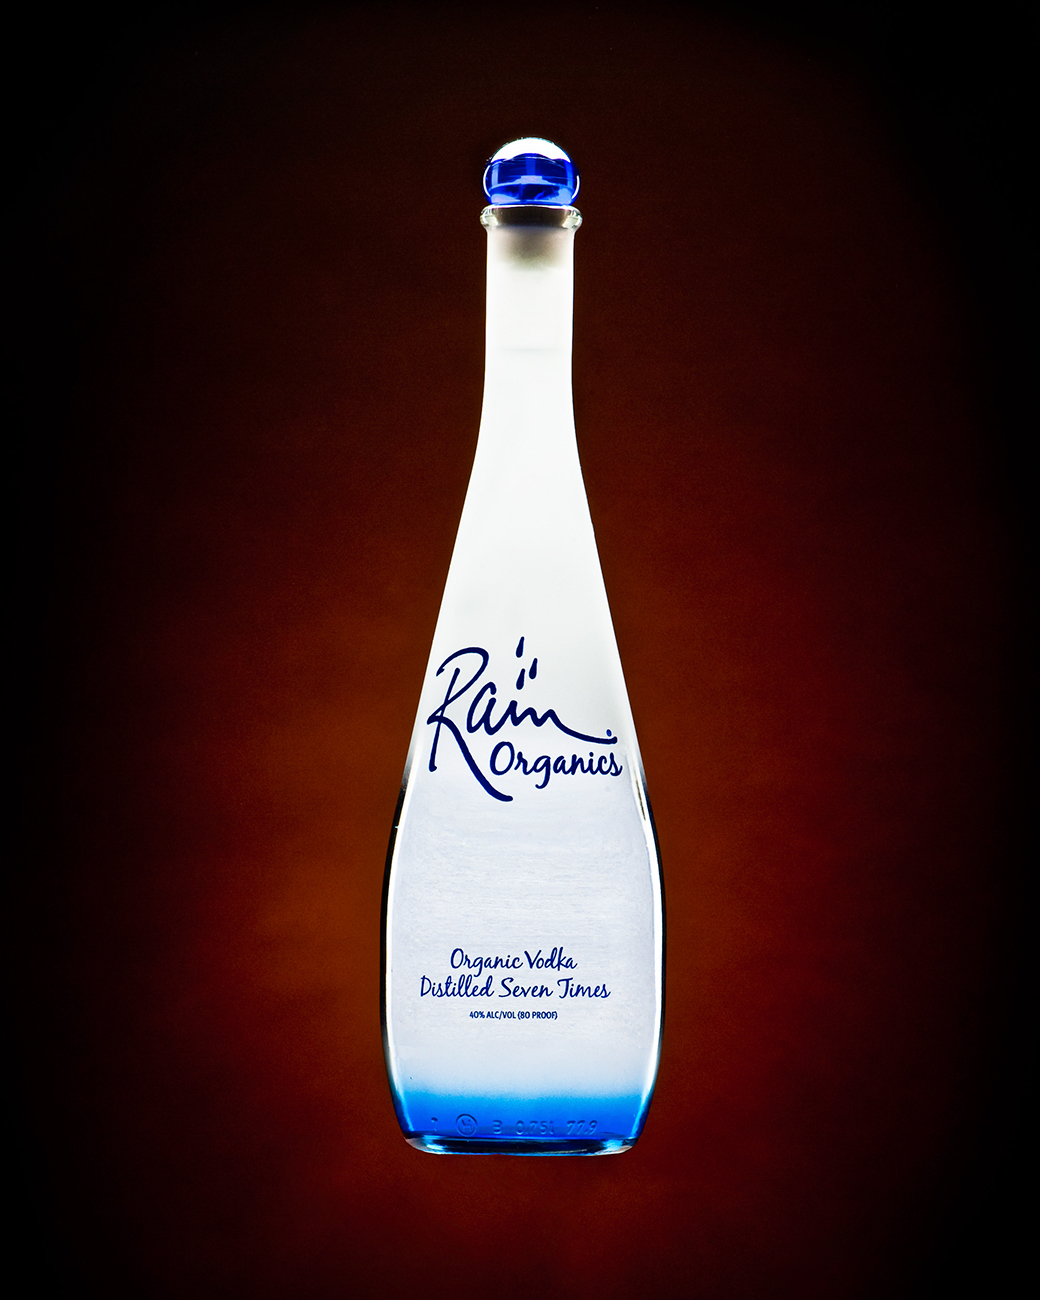 Rain Organics Vodka © Shawn Collie Photography